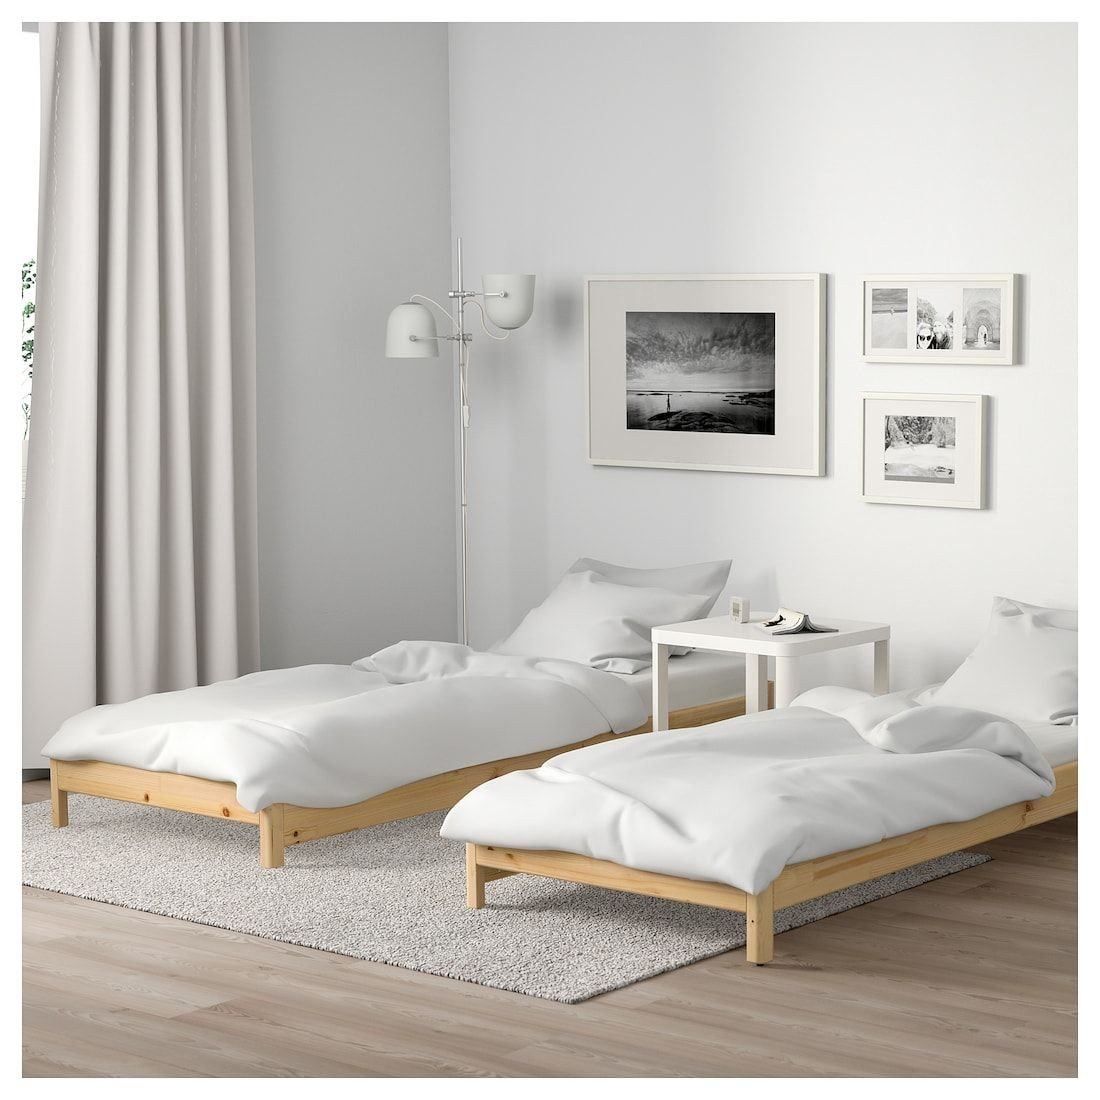 Bedroom Set with Mattress Included Unique Ut…ker Stackable Bed with 2 Mattresses Pine Husvika In